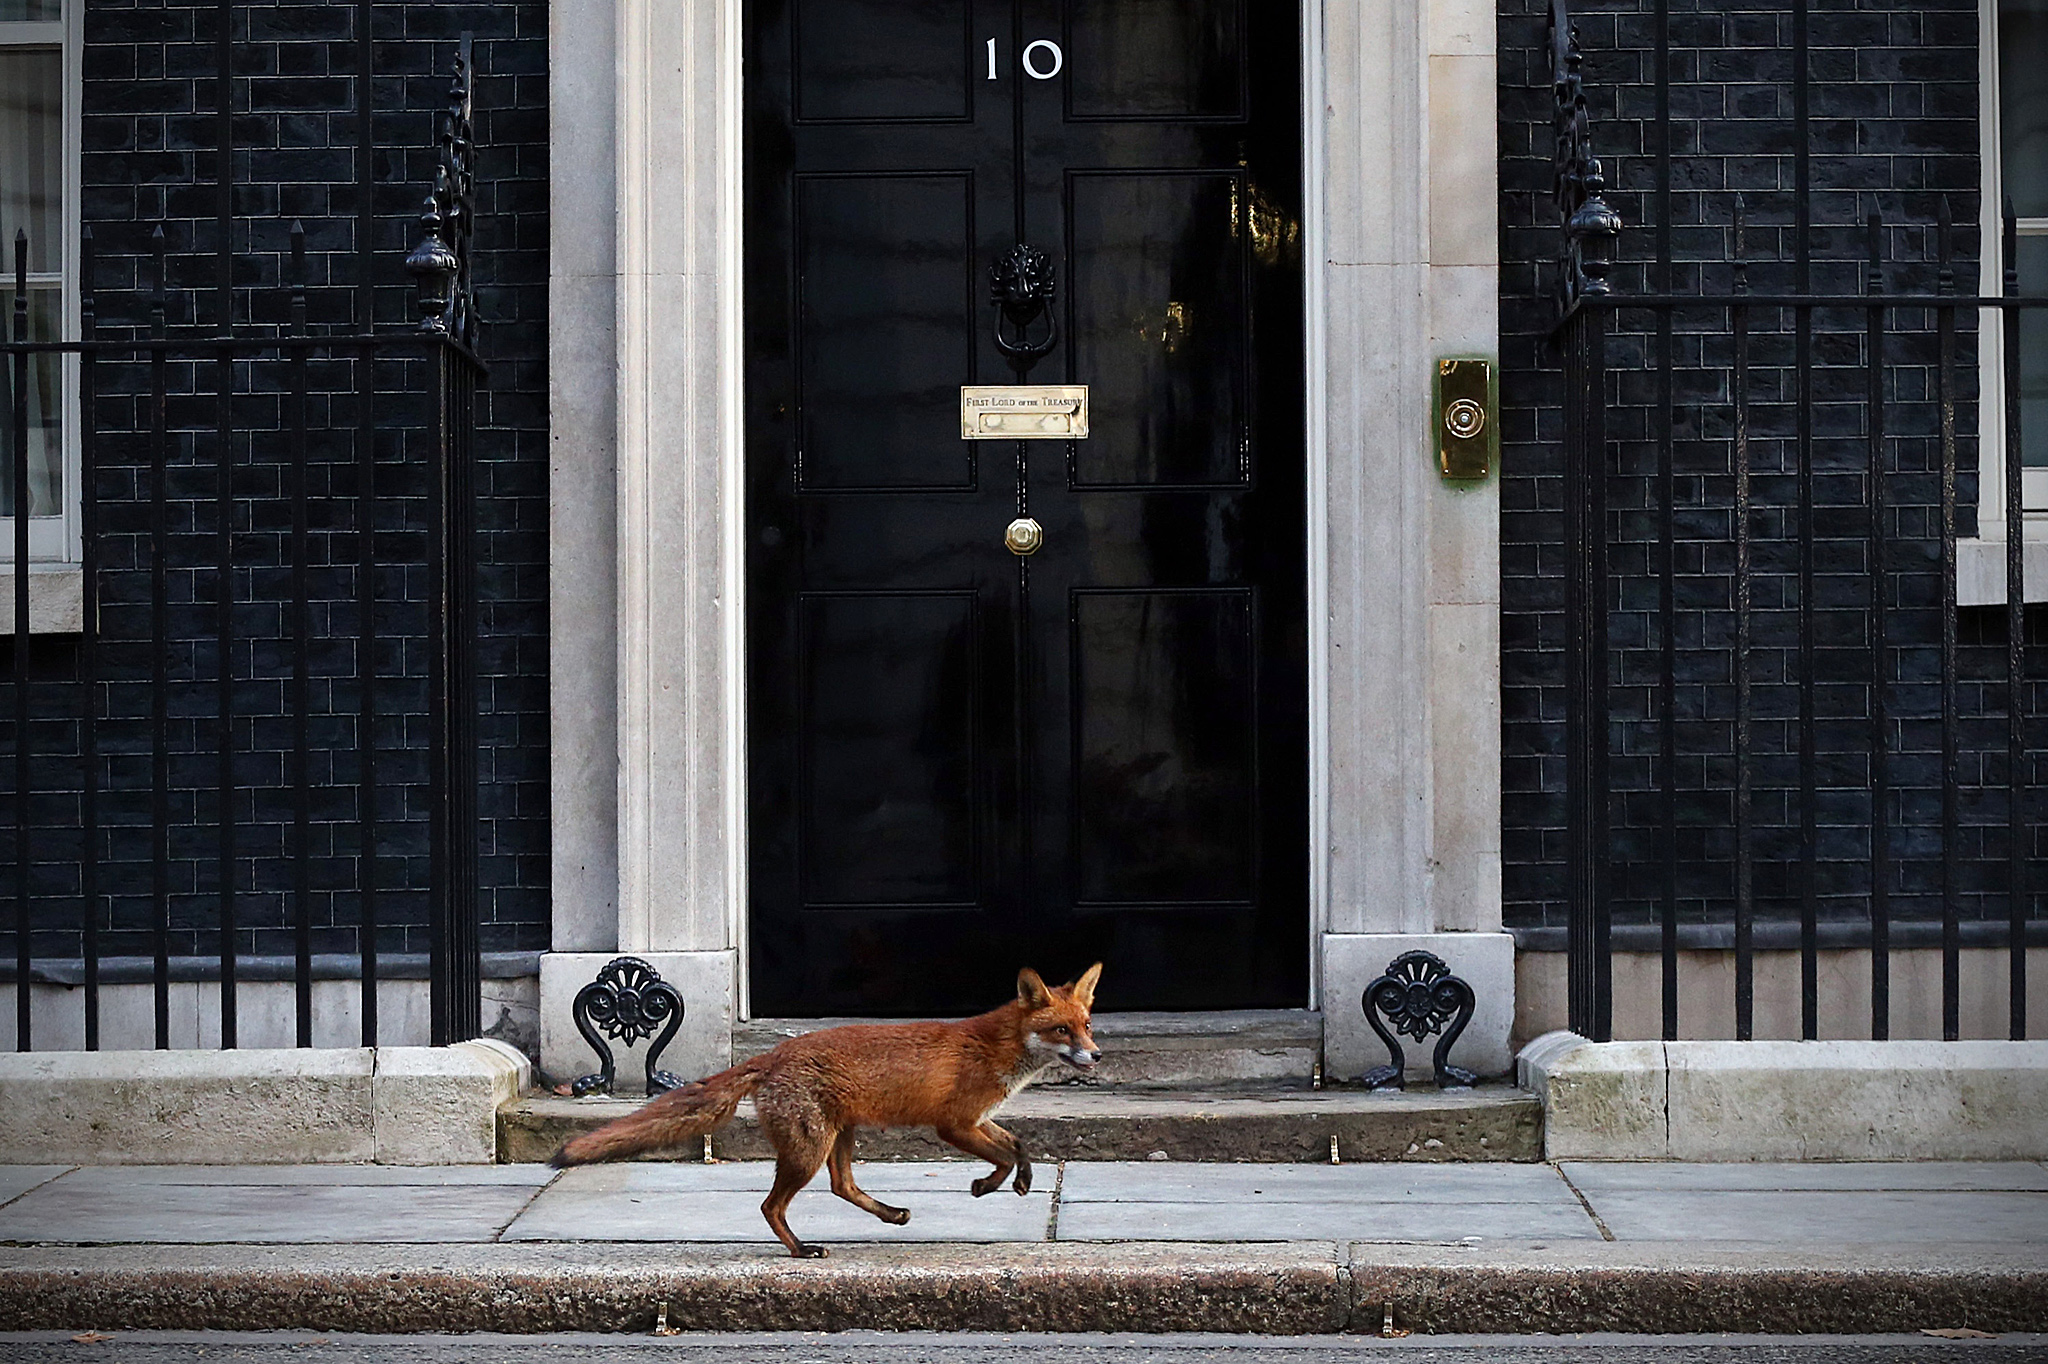 LONDON, ENGLAND - MARCH 30: A fox runs in front of 10 Downing Street on March 30, 2015 in London, England. Campaigning in what is predicted to be Britain's closest national election in decades will start after Queen Elizabeth II dissolves Parliament today. (Photo by Carl Court/Getty Images)